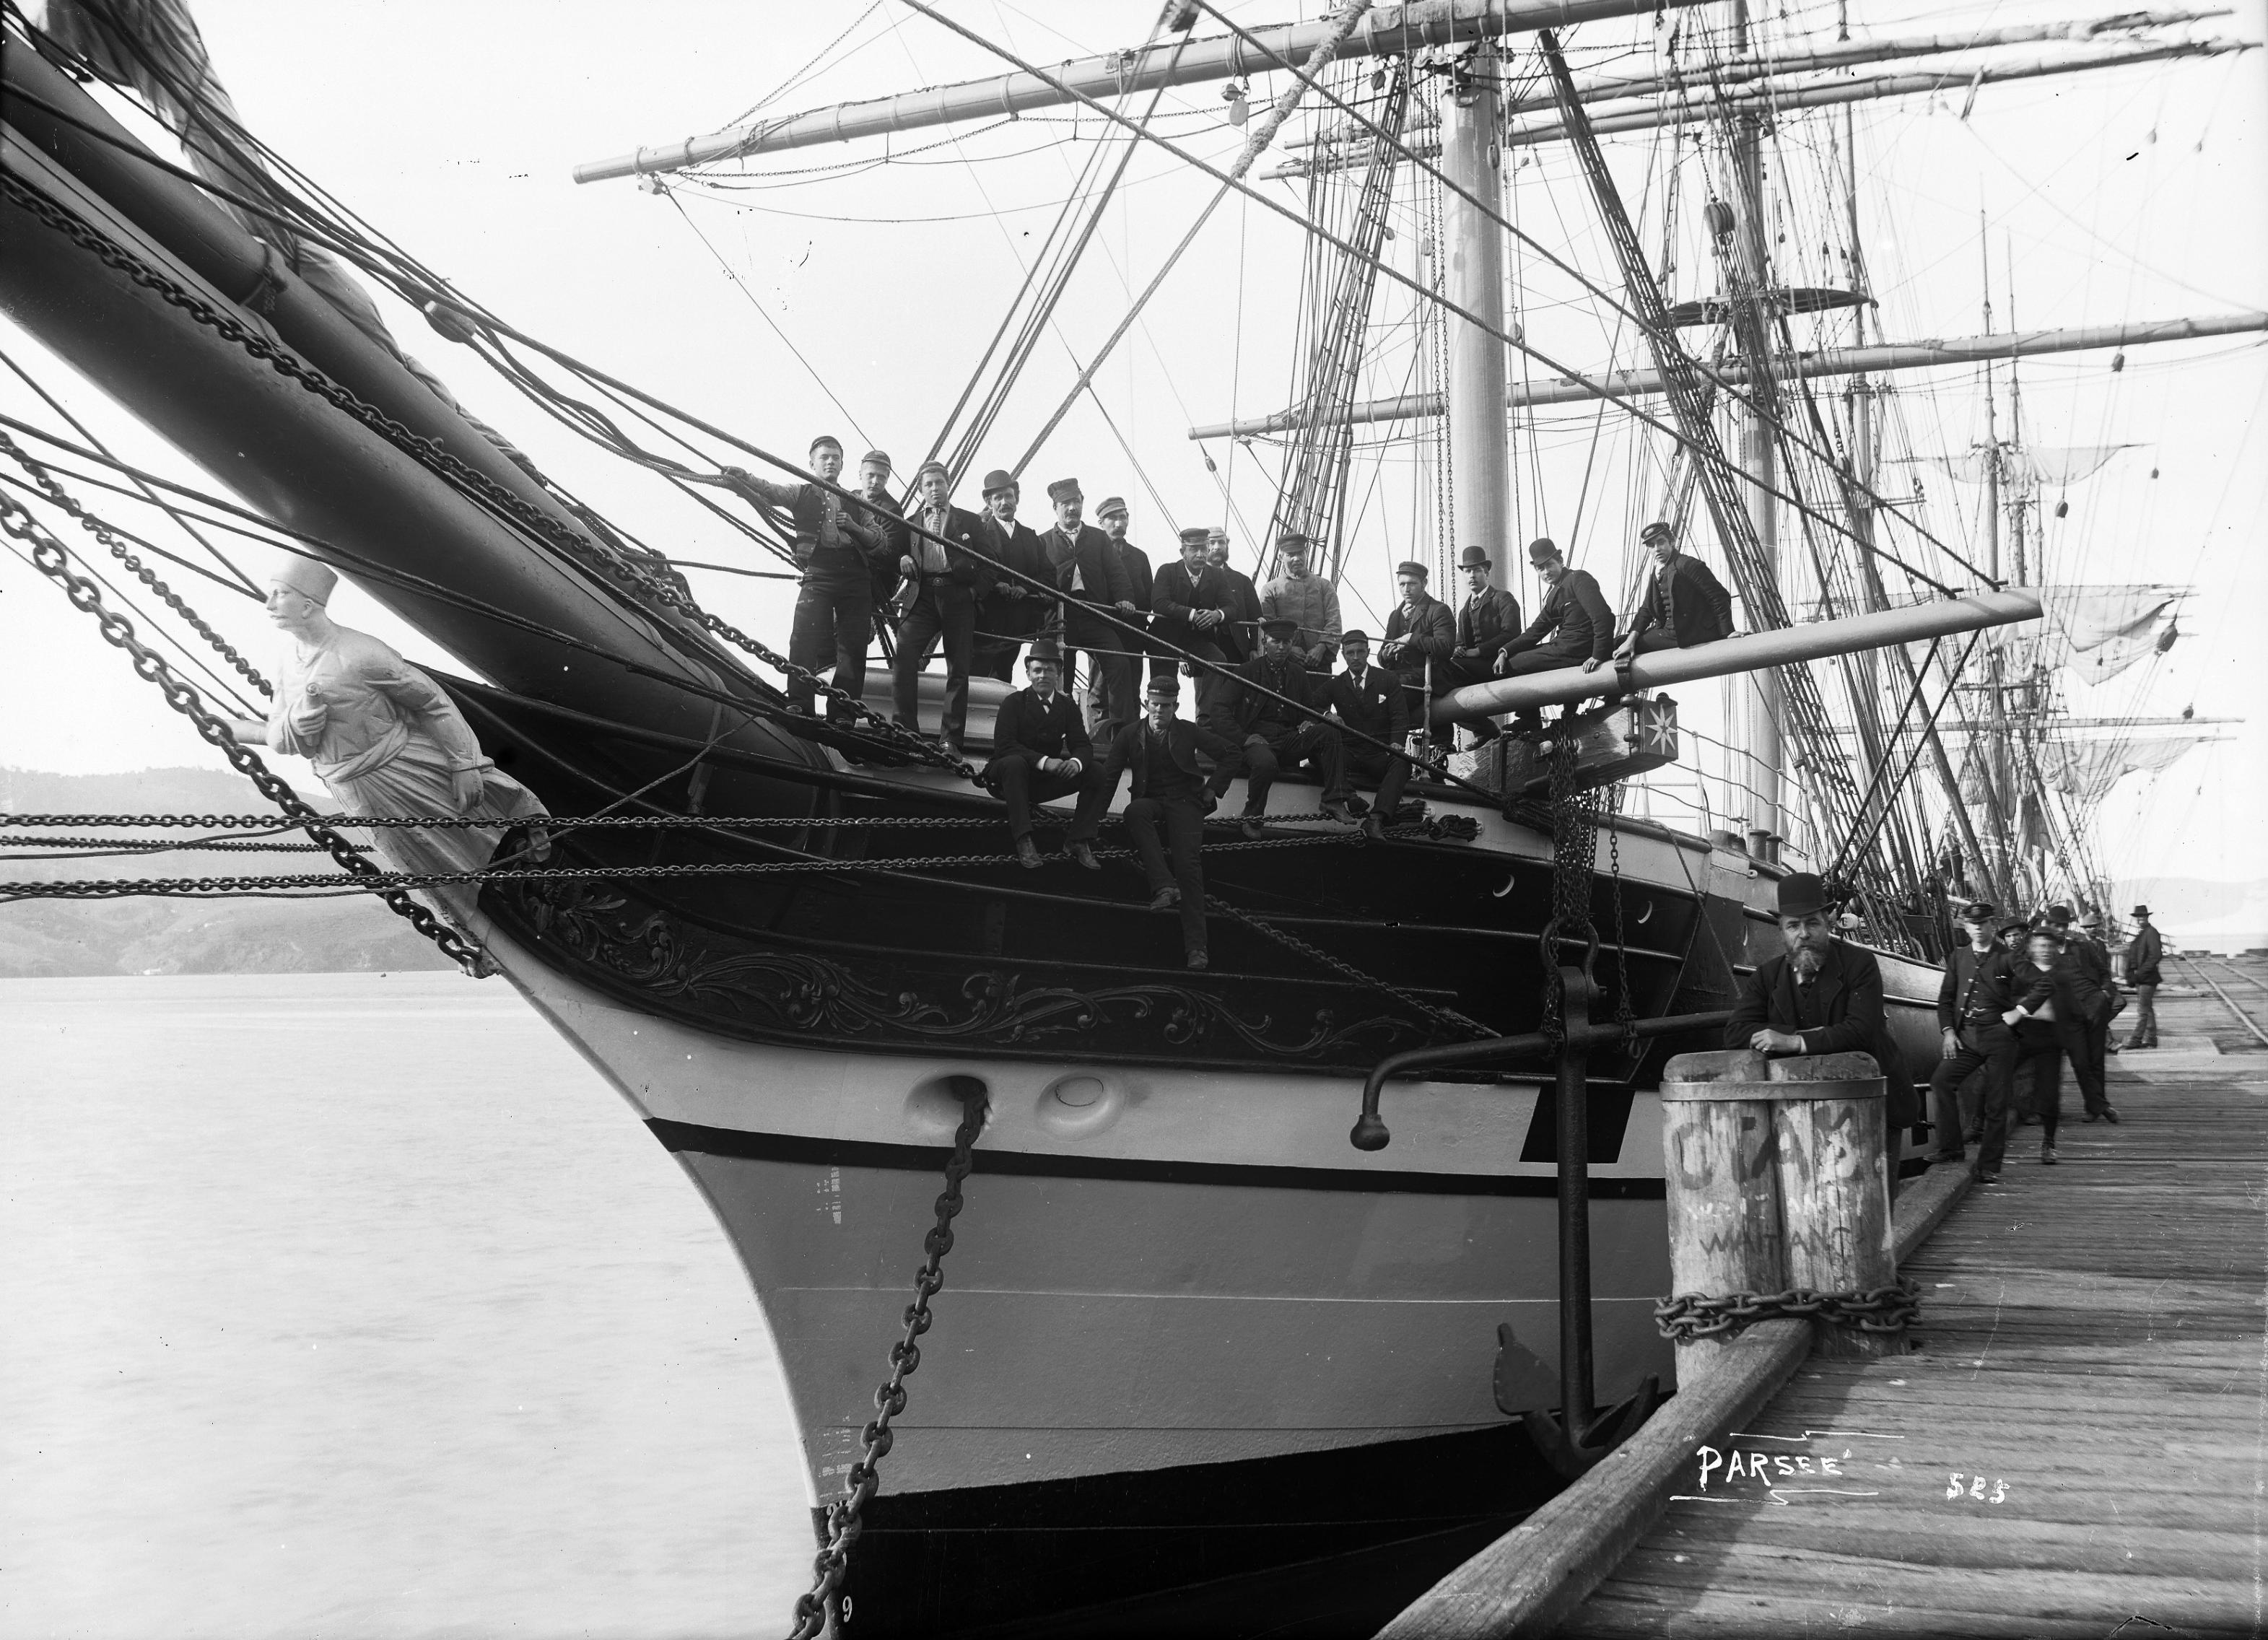 1868 ships IMAGES VIDEOS